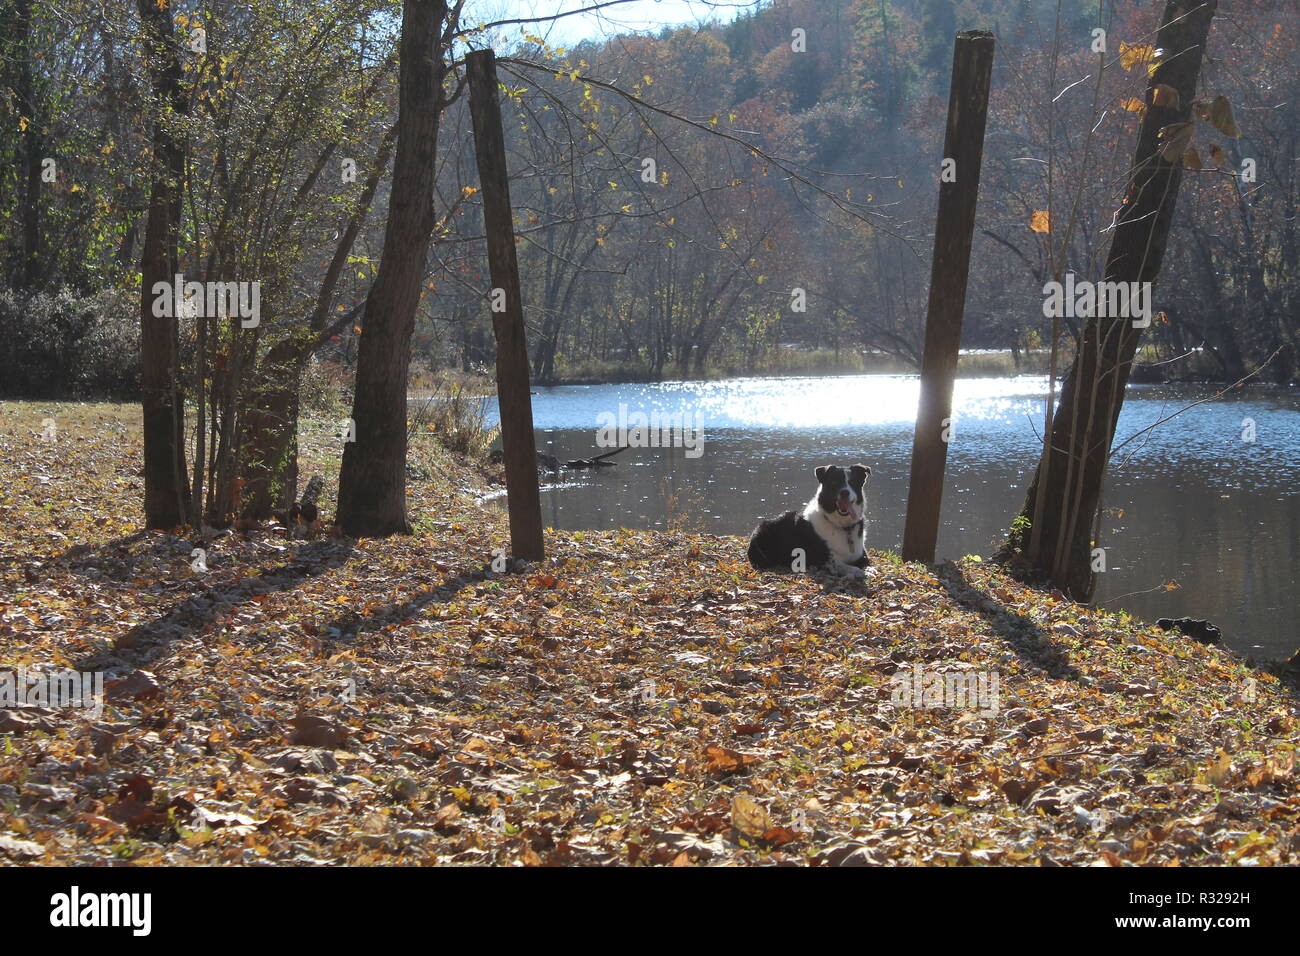 Border Collie posing in autumn scenery - Stock Image